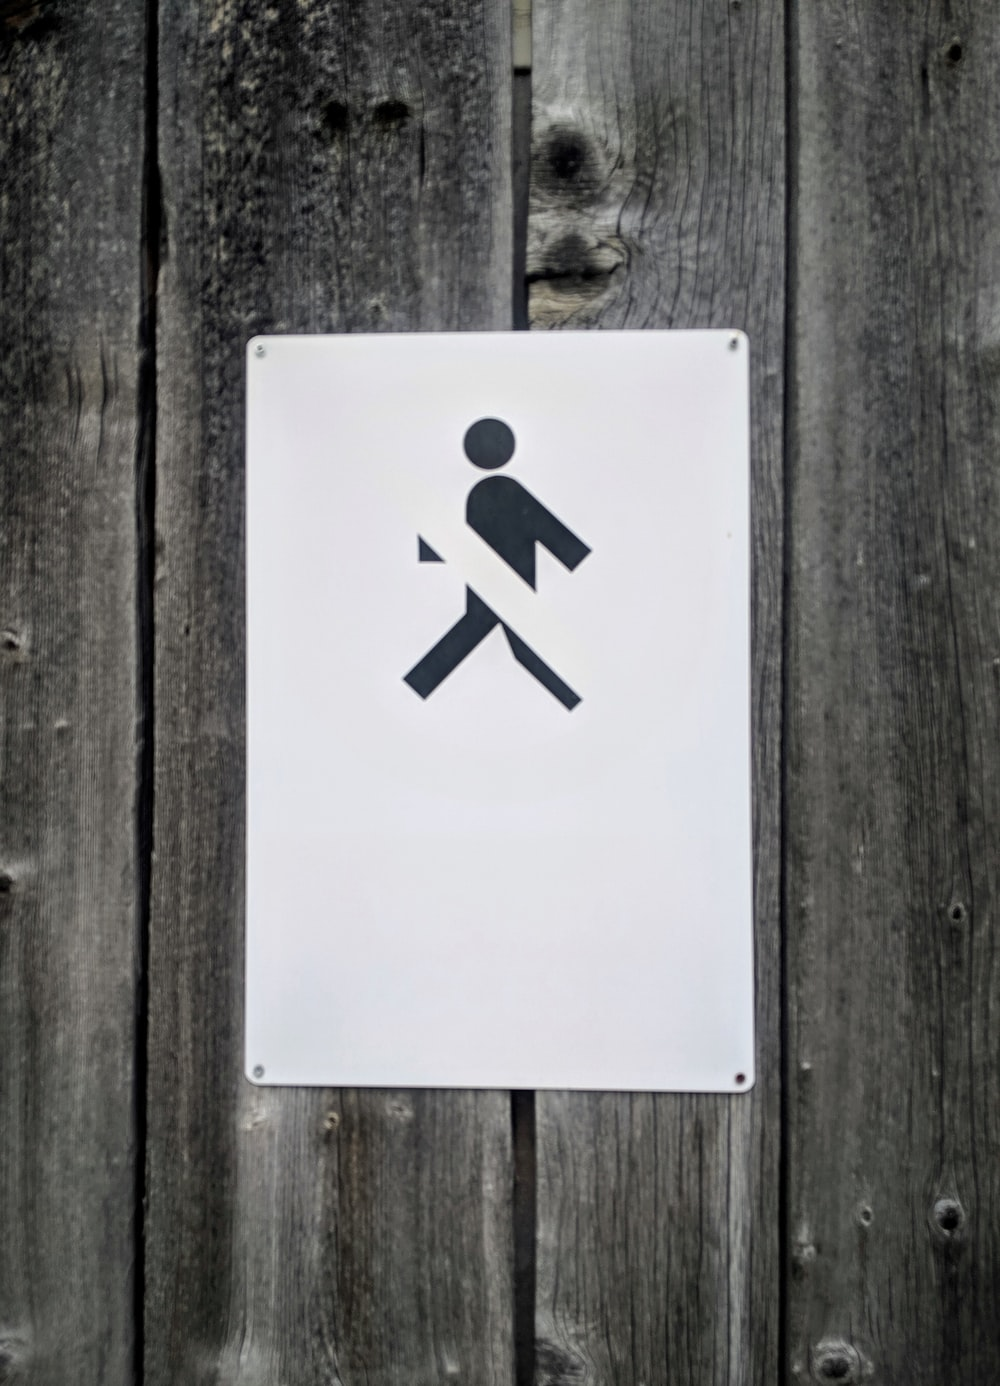 No Walking sign on gray wooden wall